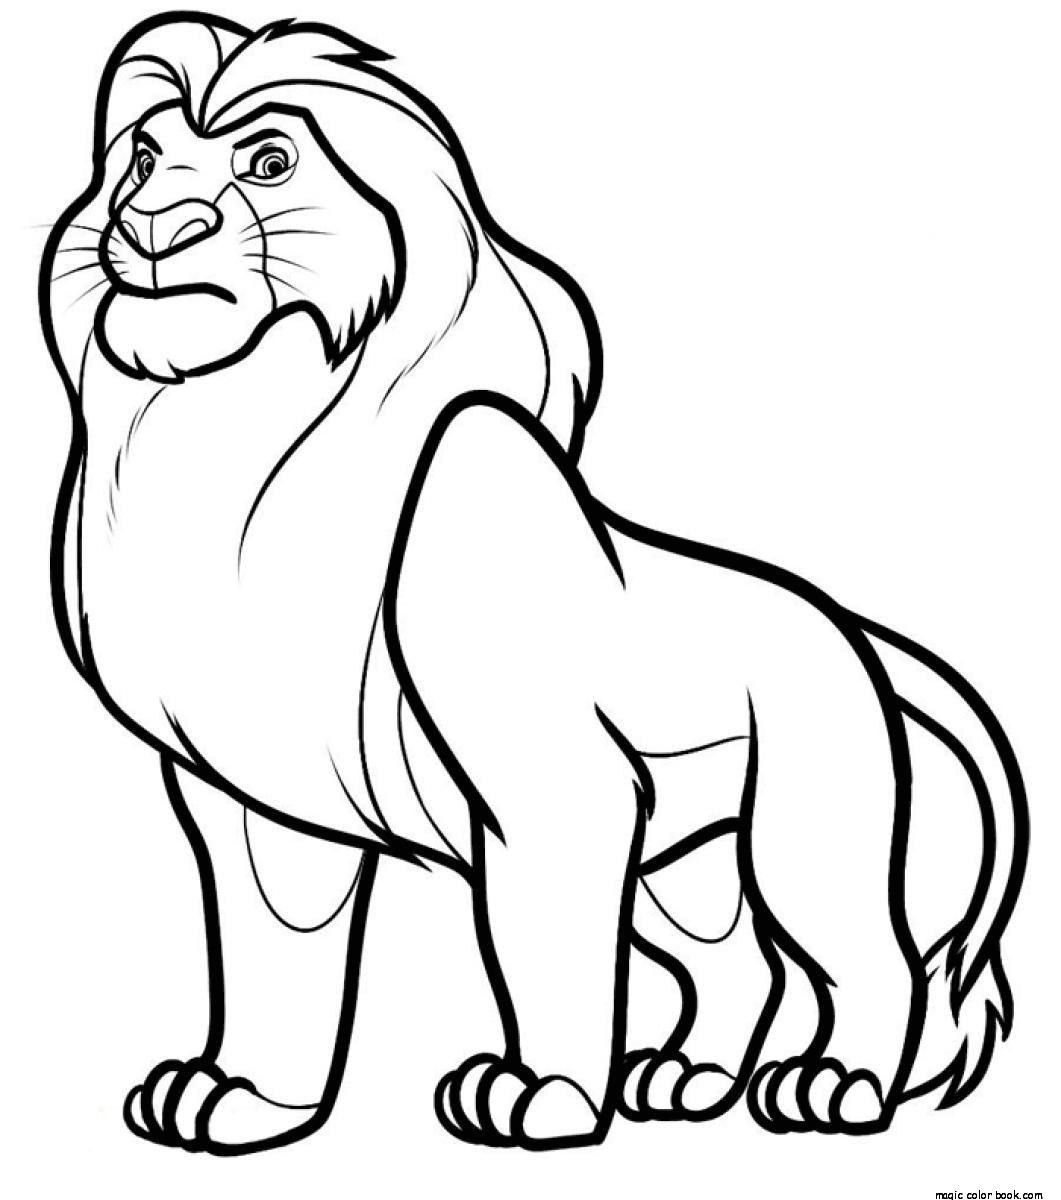 Lion king online coloring pages - Mufasa Disney The Lion King Coloring Pages Online Free